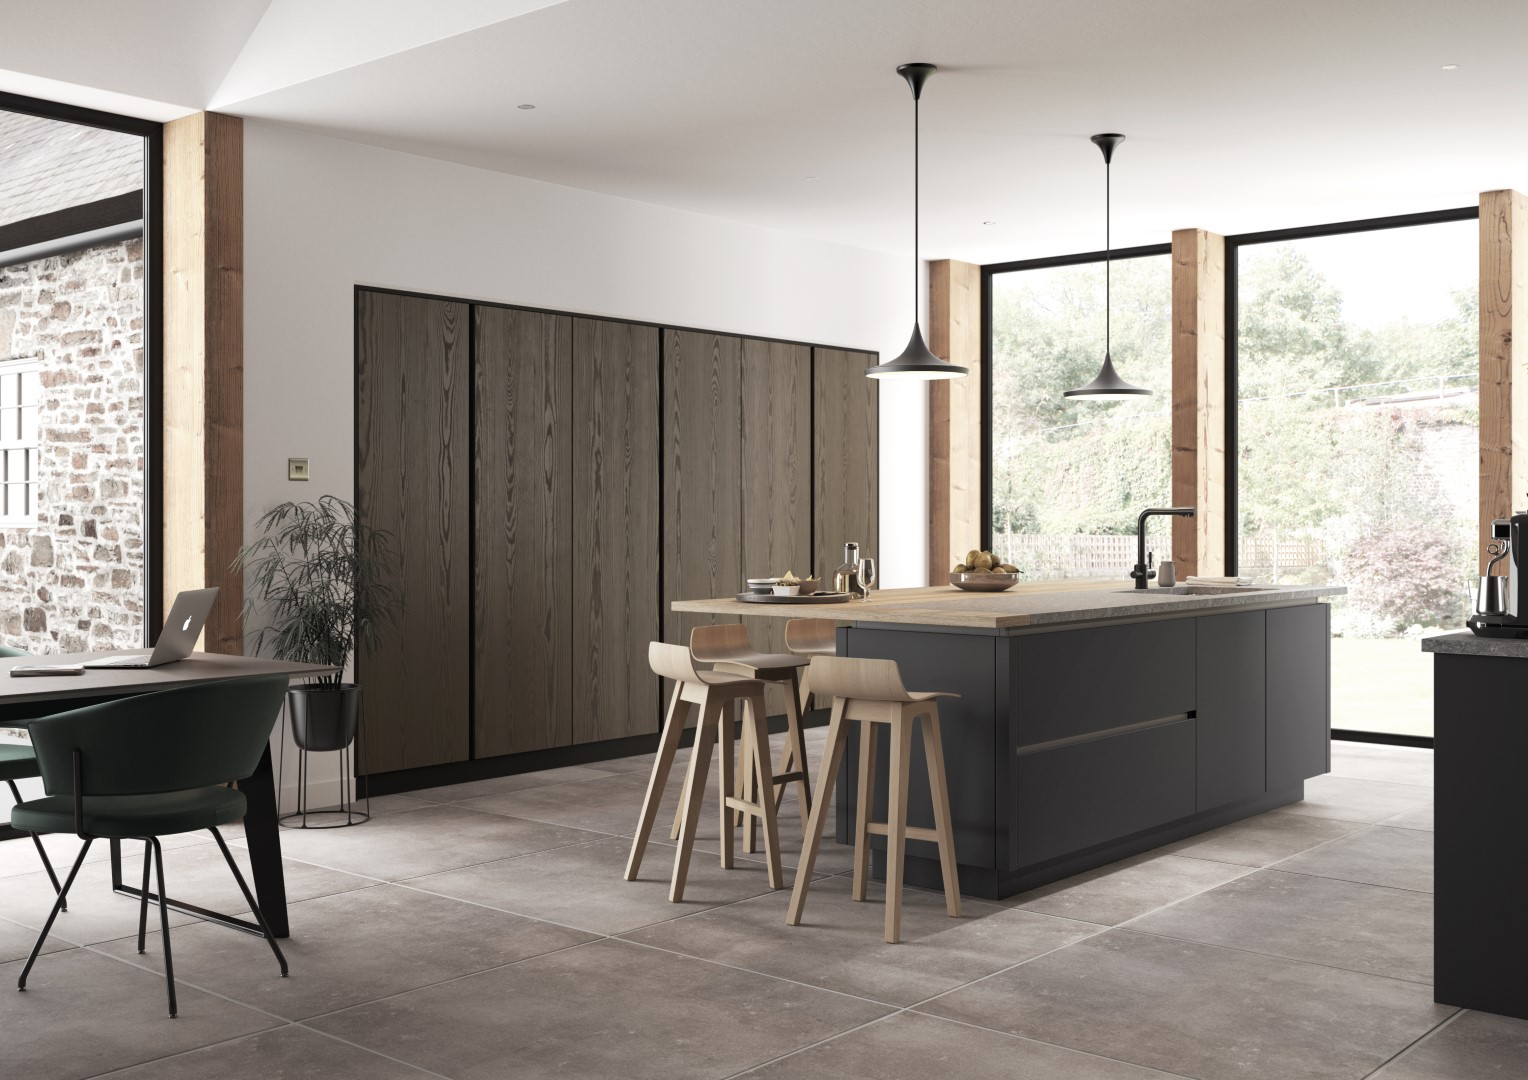 Kelso stained Truffle Grey and Zola Matte Graphite - Kitchen Design - Alan Kelly Kitchens - Waterford - 2